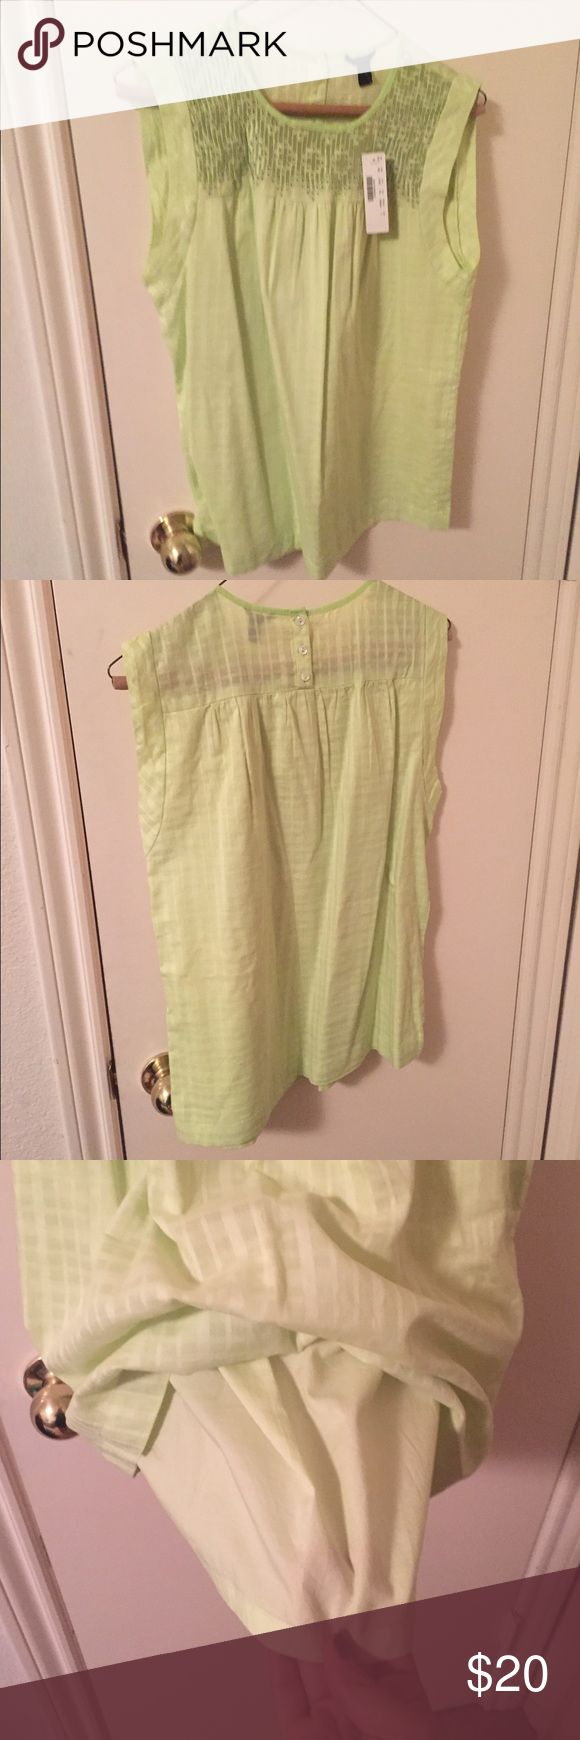 Chartreuse top Beautiful/soft fabric, fit, color & detail - 100% cotton. Blouse also includes lining (pic 3) J. Crew Tops Blouses